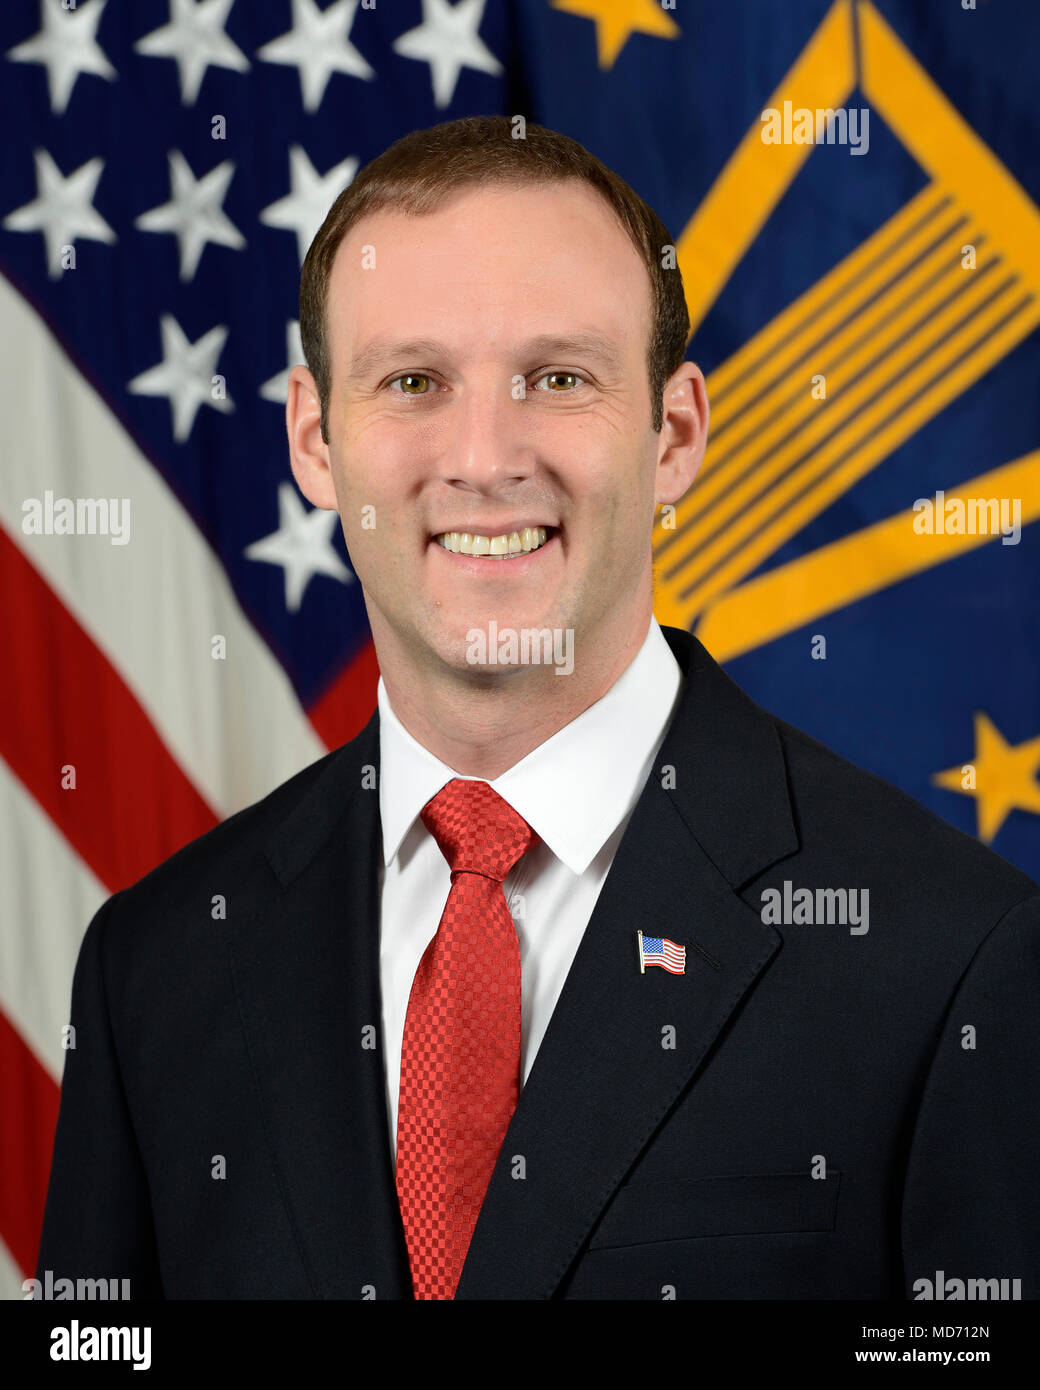 Michael Odle, Executive Director, Defense/Veterans Affairs Colaboration Office, Office of the Secretary of Defense, poses for his official portrait in the Army portrait studio at the Pentagon in Arlington, Va., Mar. 8, 2018.  (U.S. Army photo by Monica King) - Stock Image